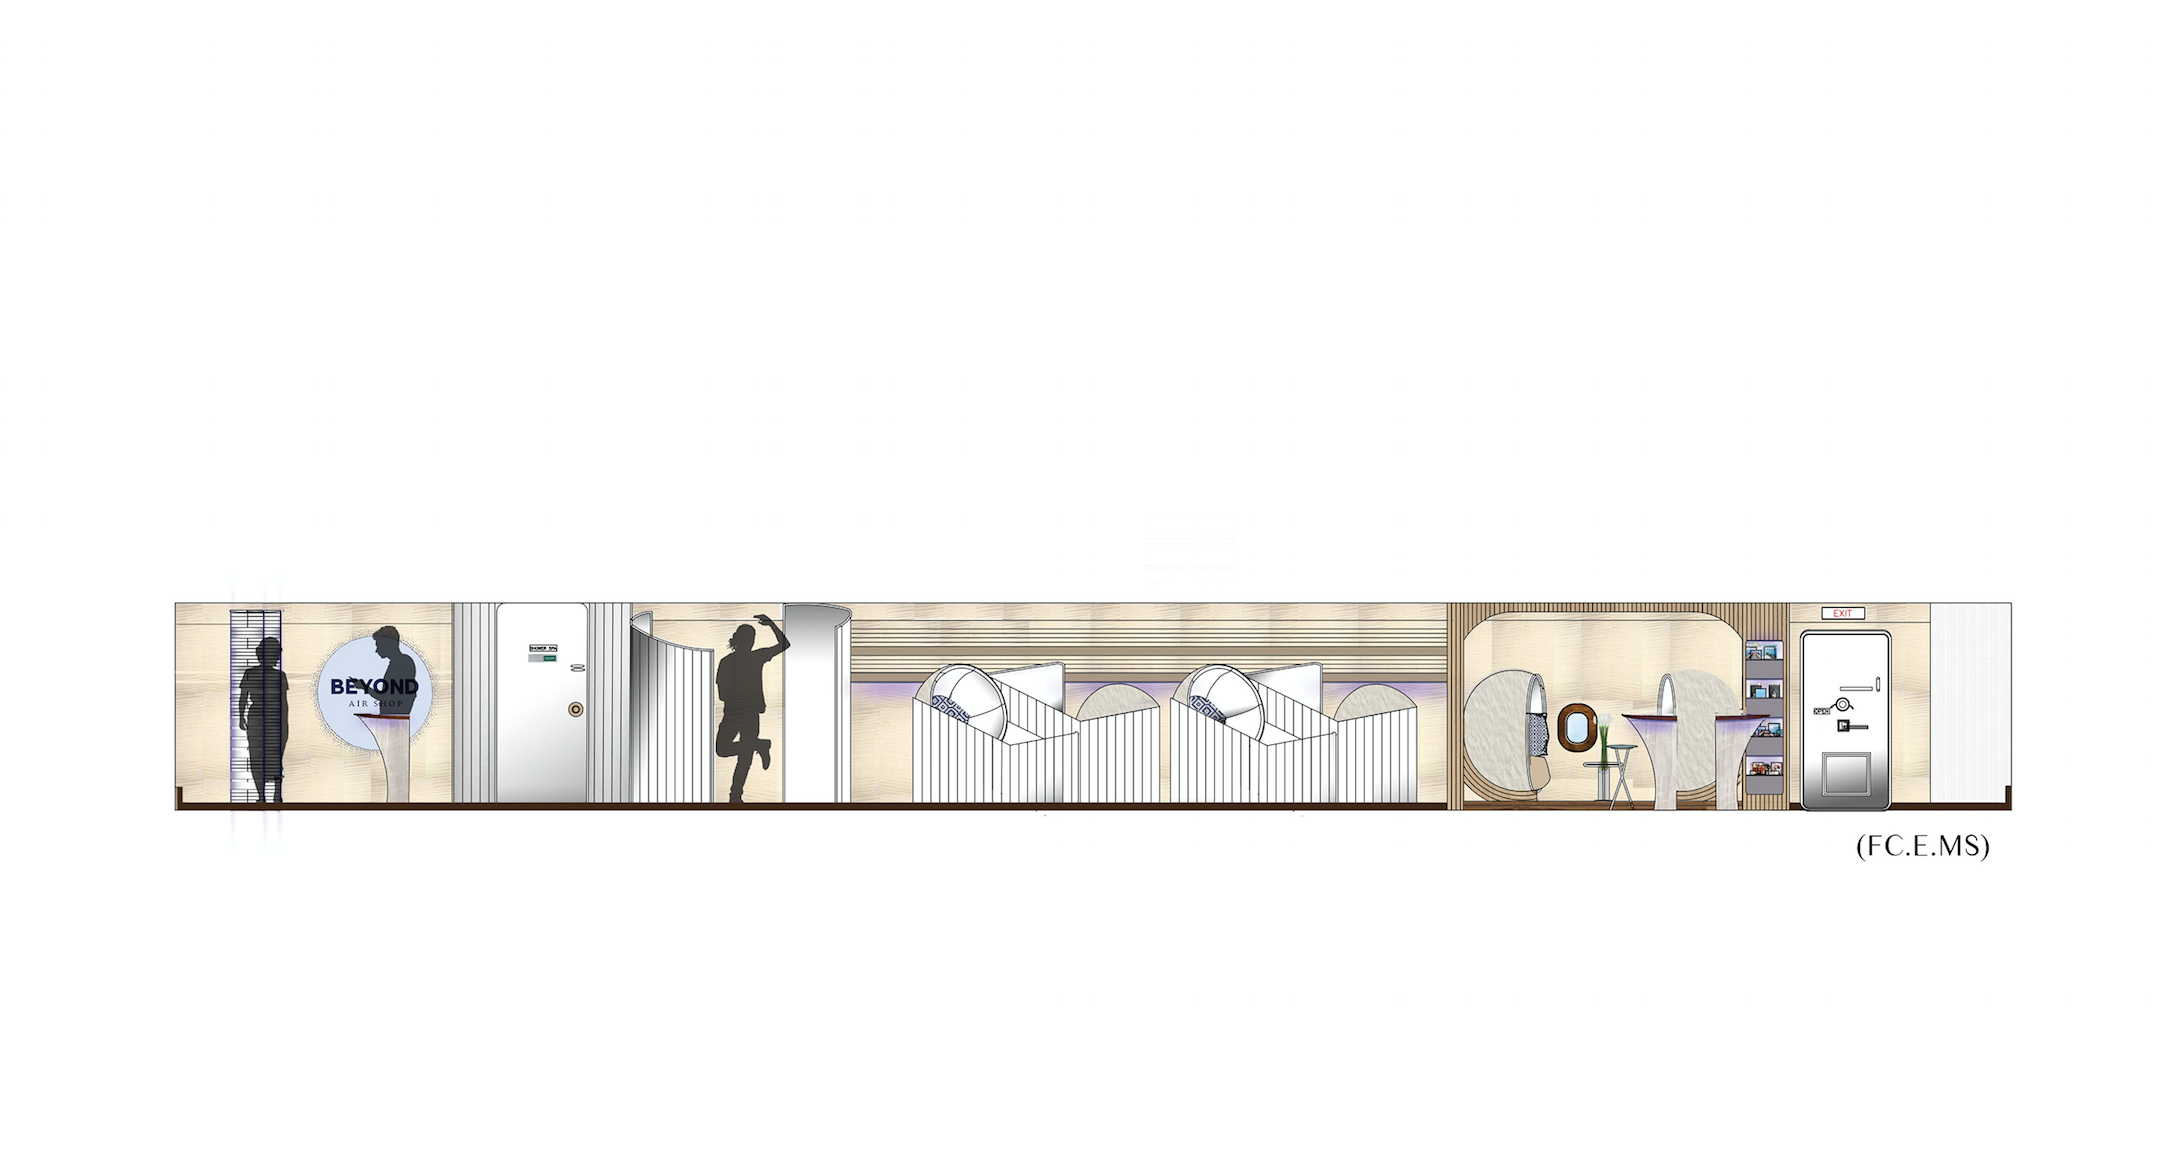 Beyond by Airbus - Elevation Drawing